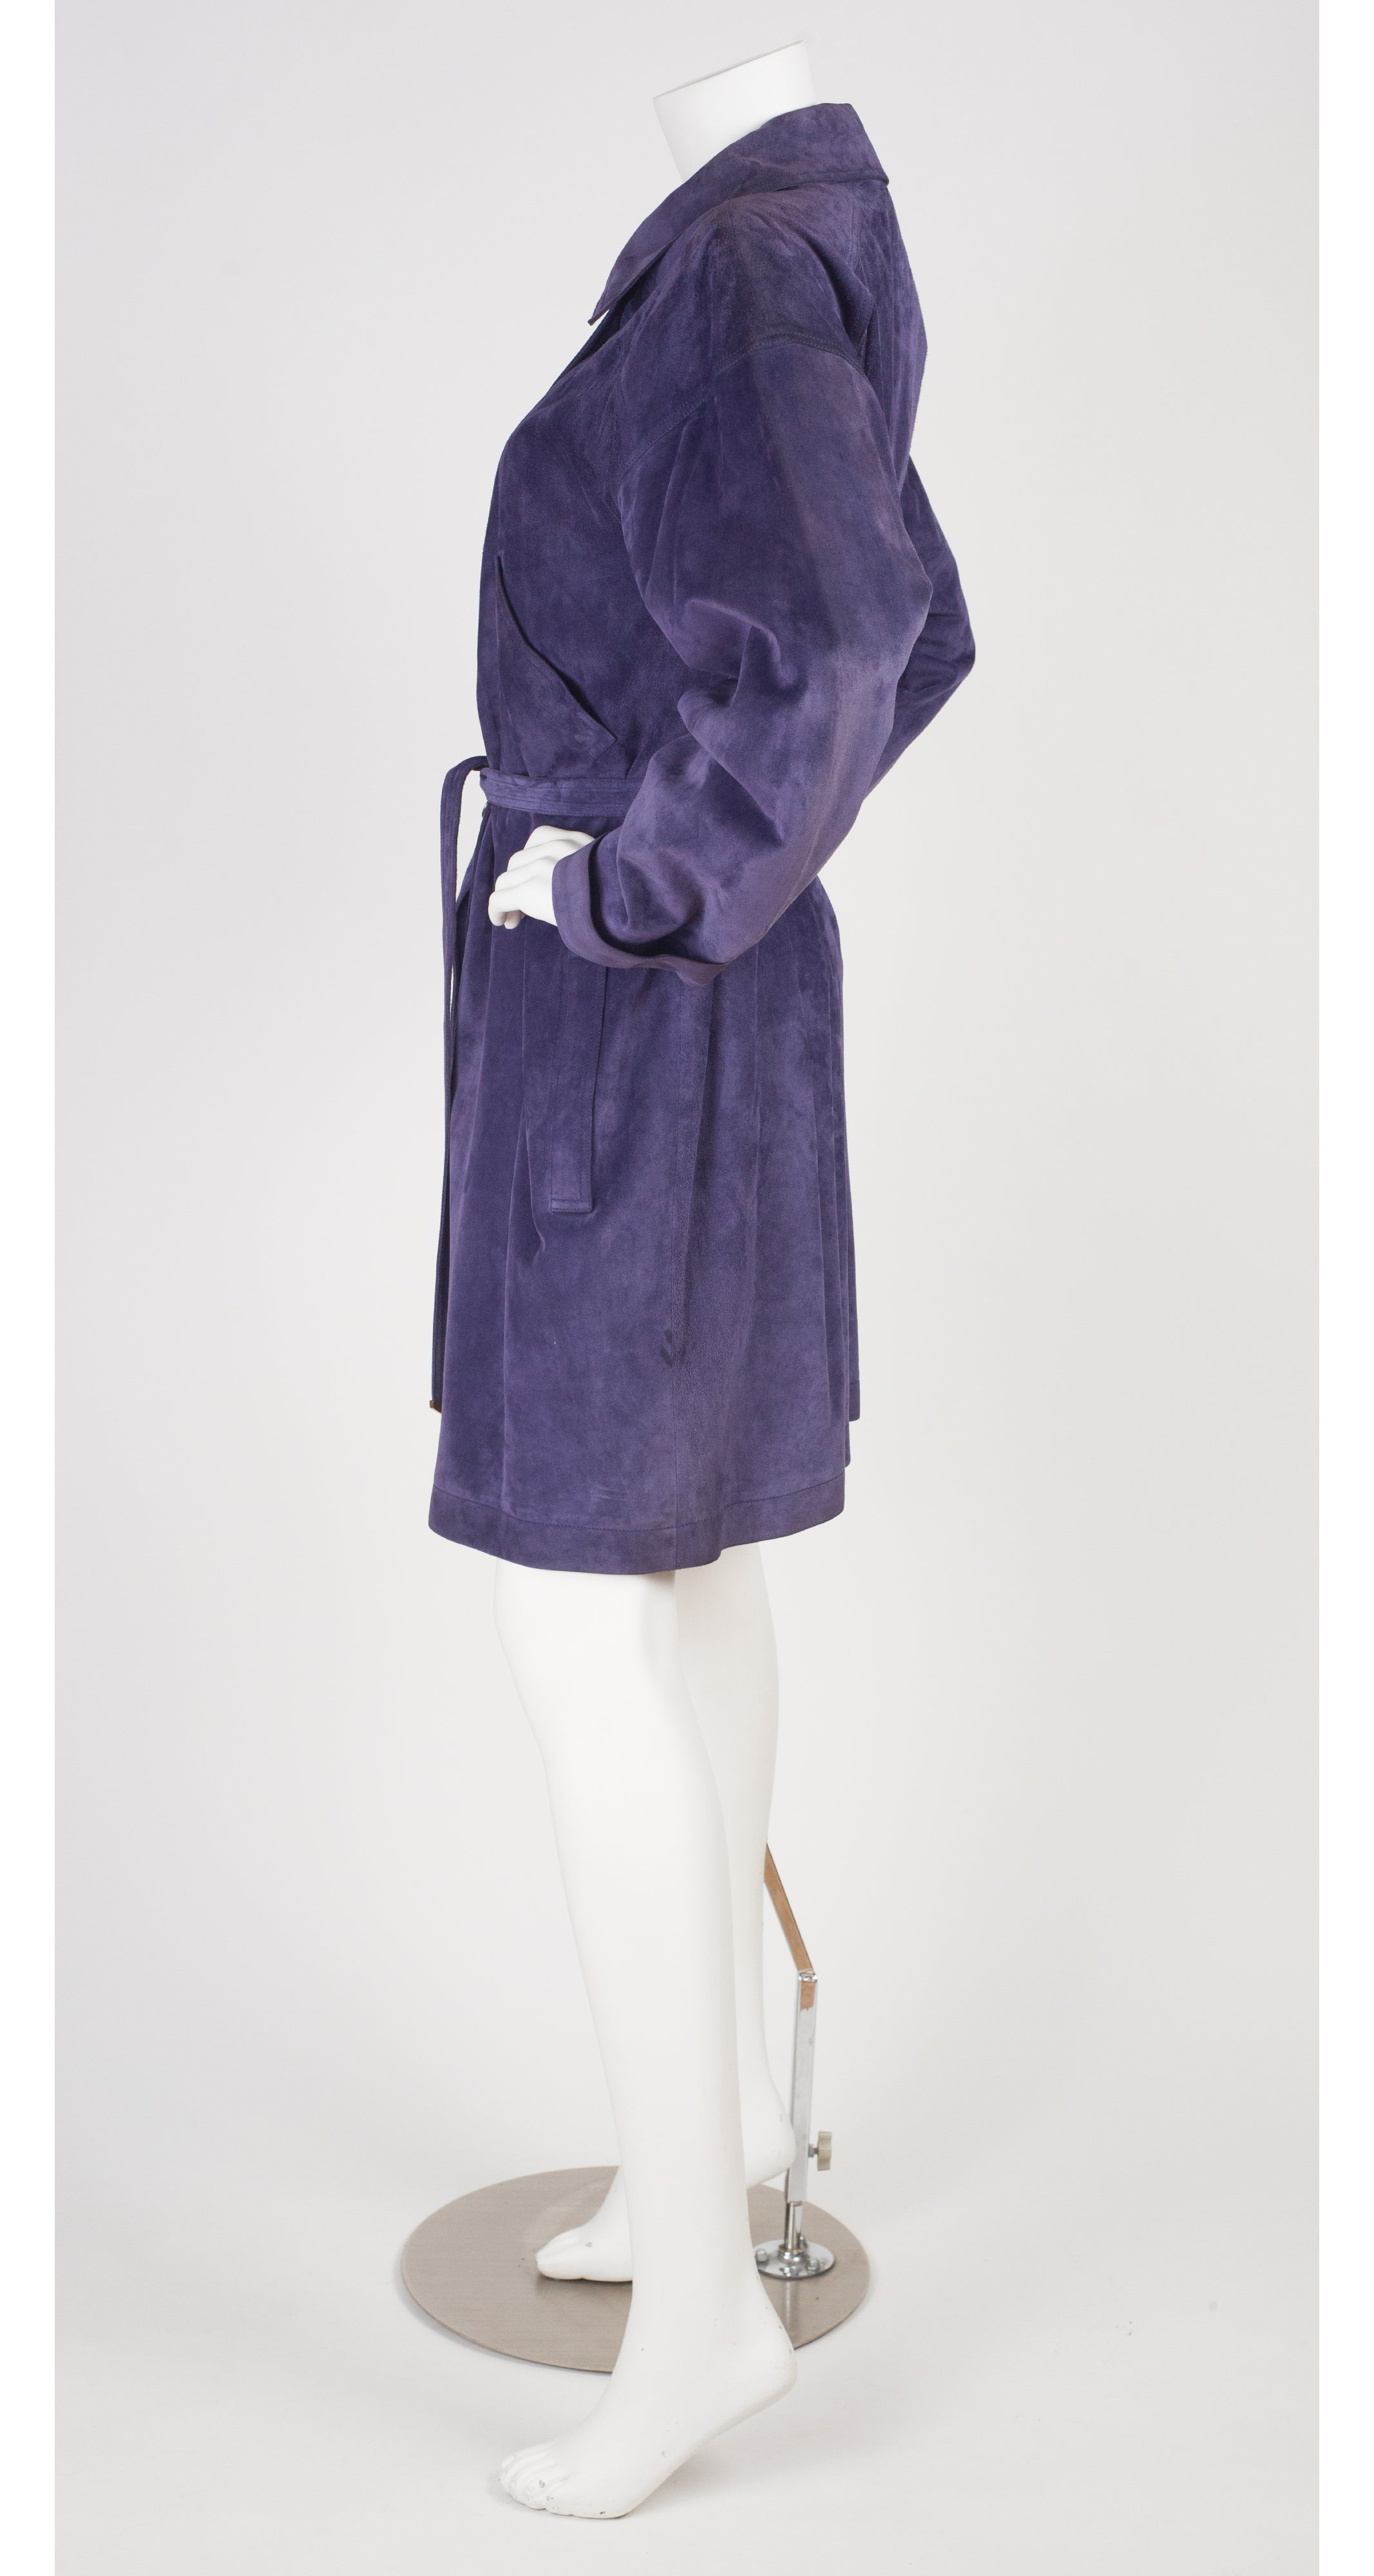 1980s Purple Suede Coat & Tassel Beret Set